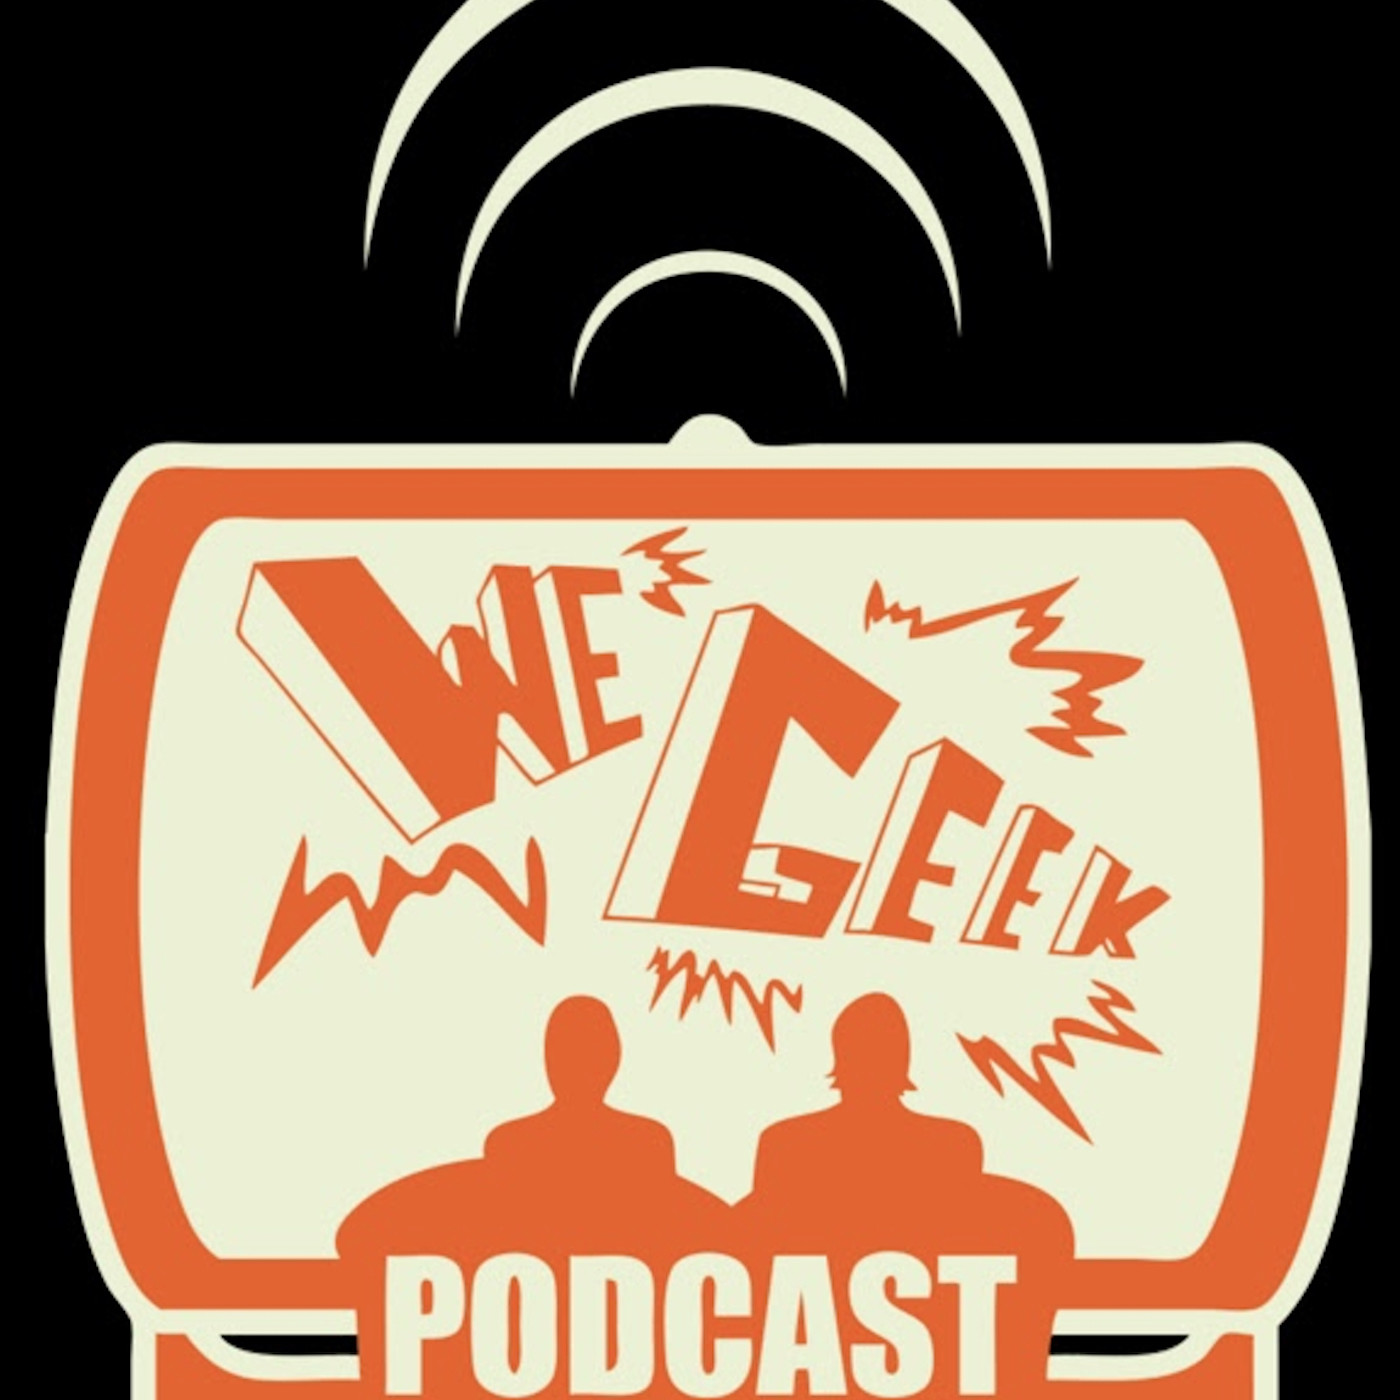 We Geek Podcast Episode 197: Go Rent A Theater